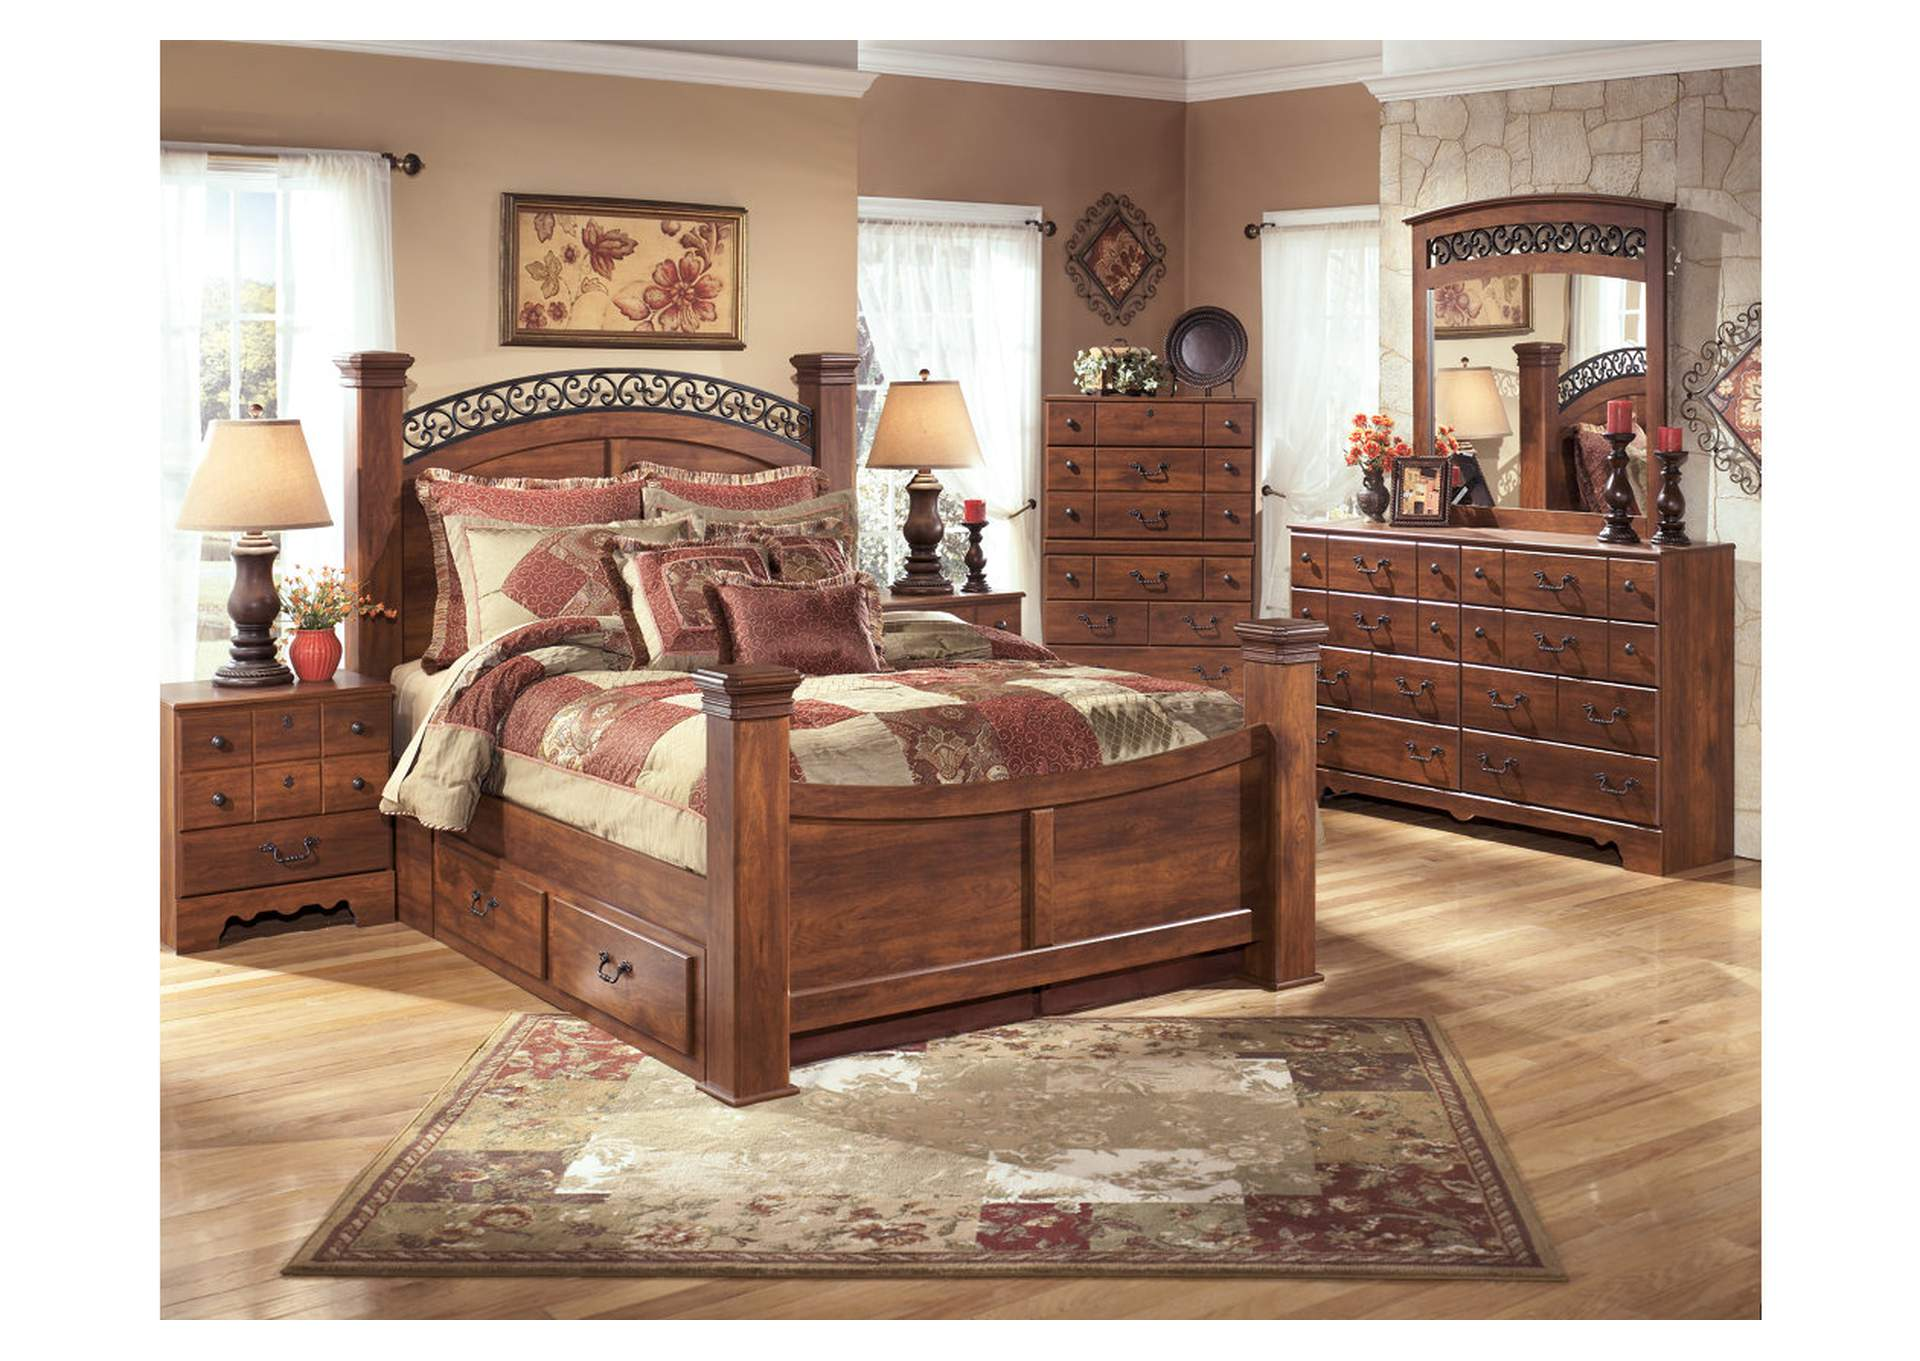 Timberline King Poster Storage Bed w/Dresser, Mirror, Drawer Chest & Nightstand,Signature Design By Ashley